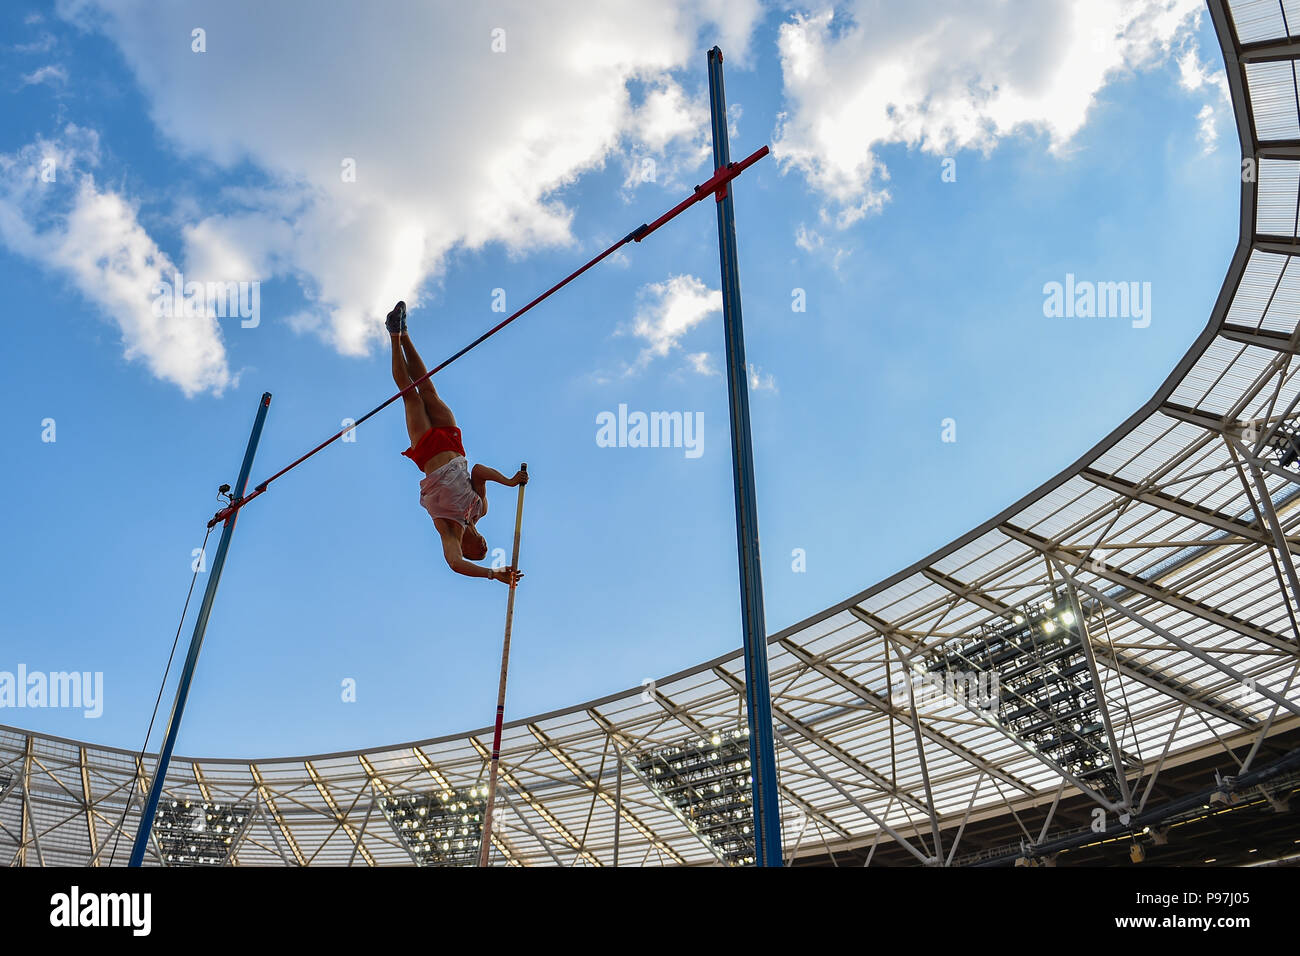 Piotr Lisek (POL) in Men's Pole Vault during Athletics World Cup London 2018 at London Stadium on Sunday, 15 July 2018. LONDON, ENGLAND. Credit: Taka G Wu - Stock Image